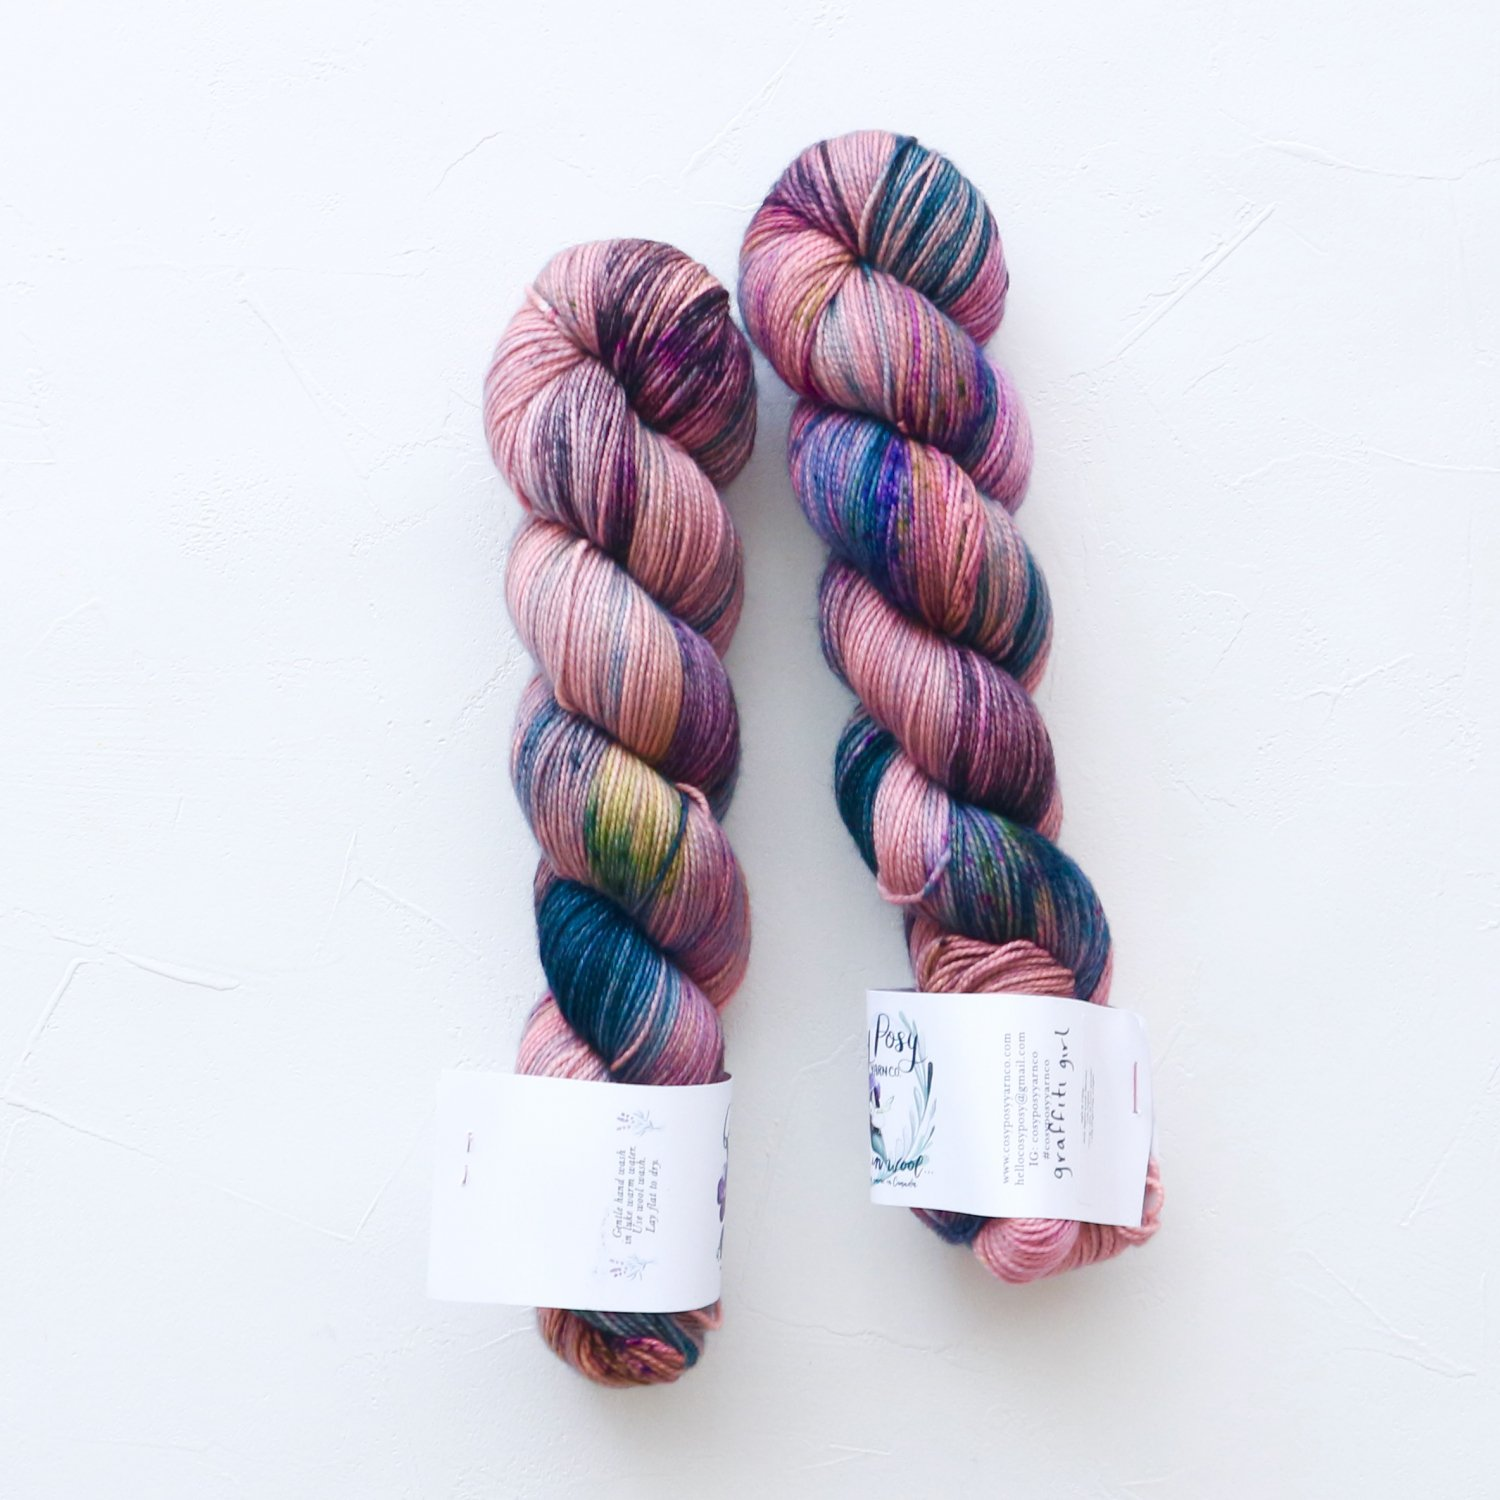 【Cosy Posy Yarn】<br>SOFT & COSY<br>Graffiti Girl